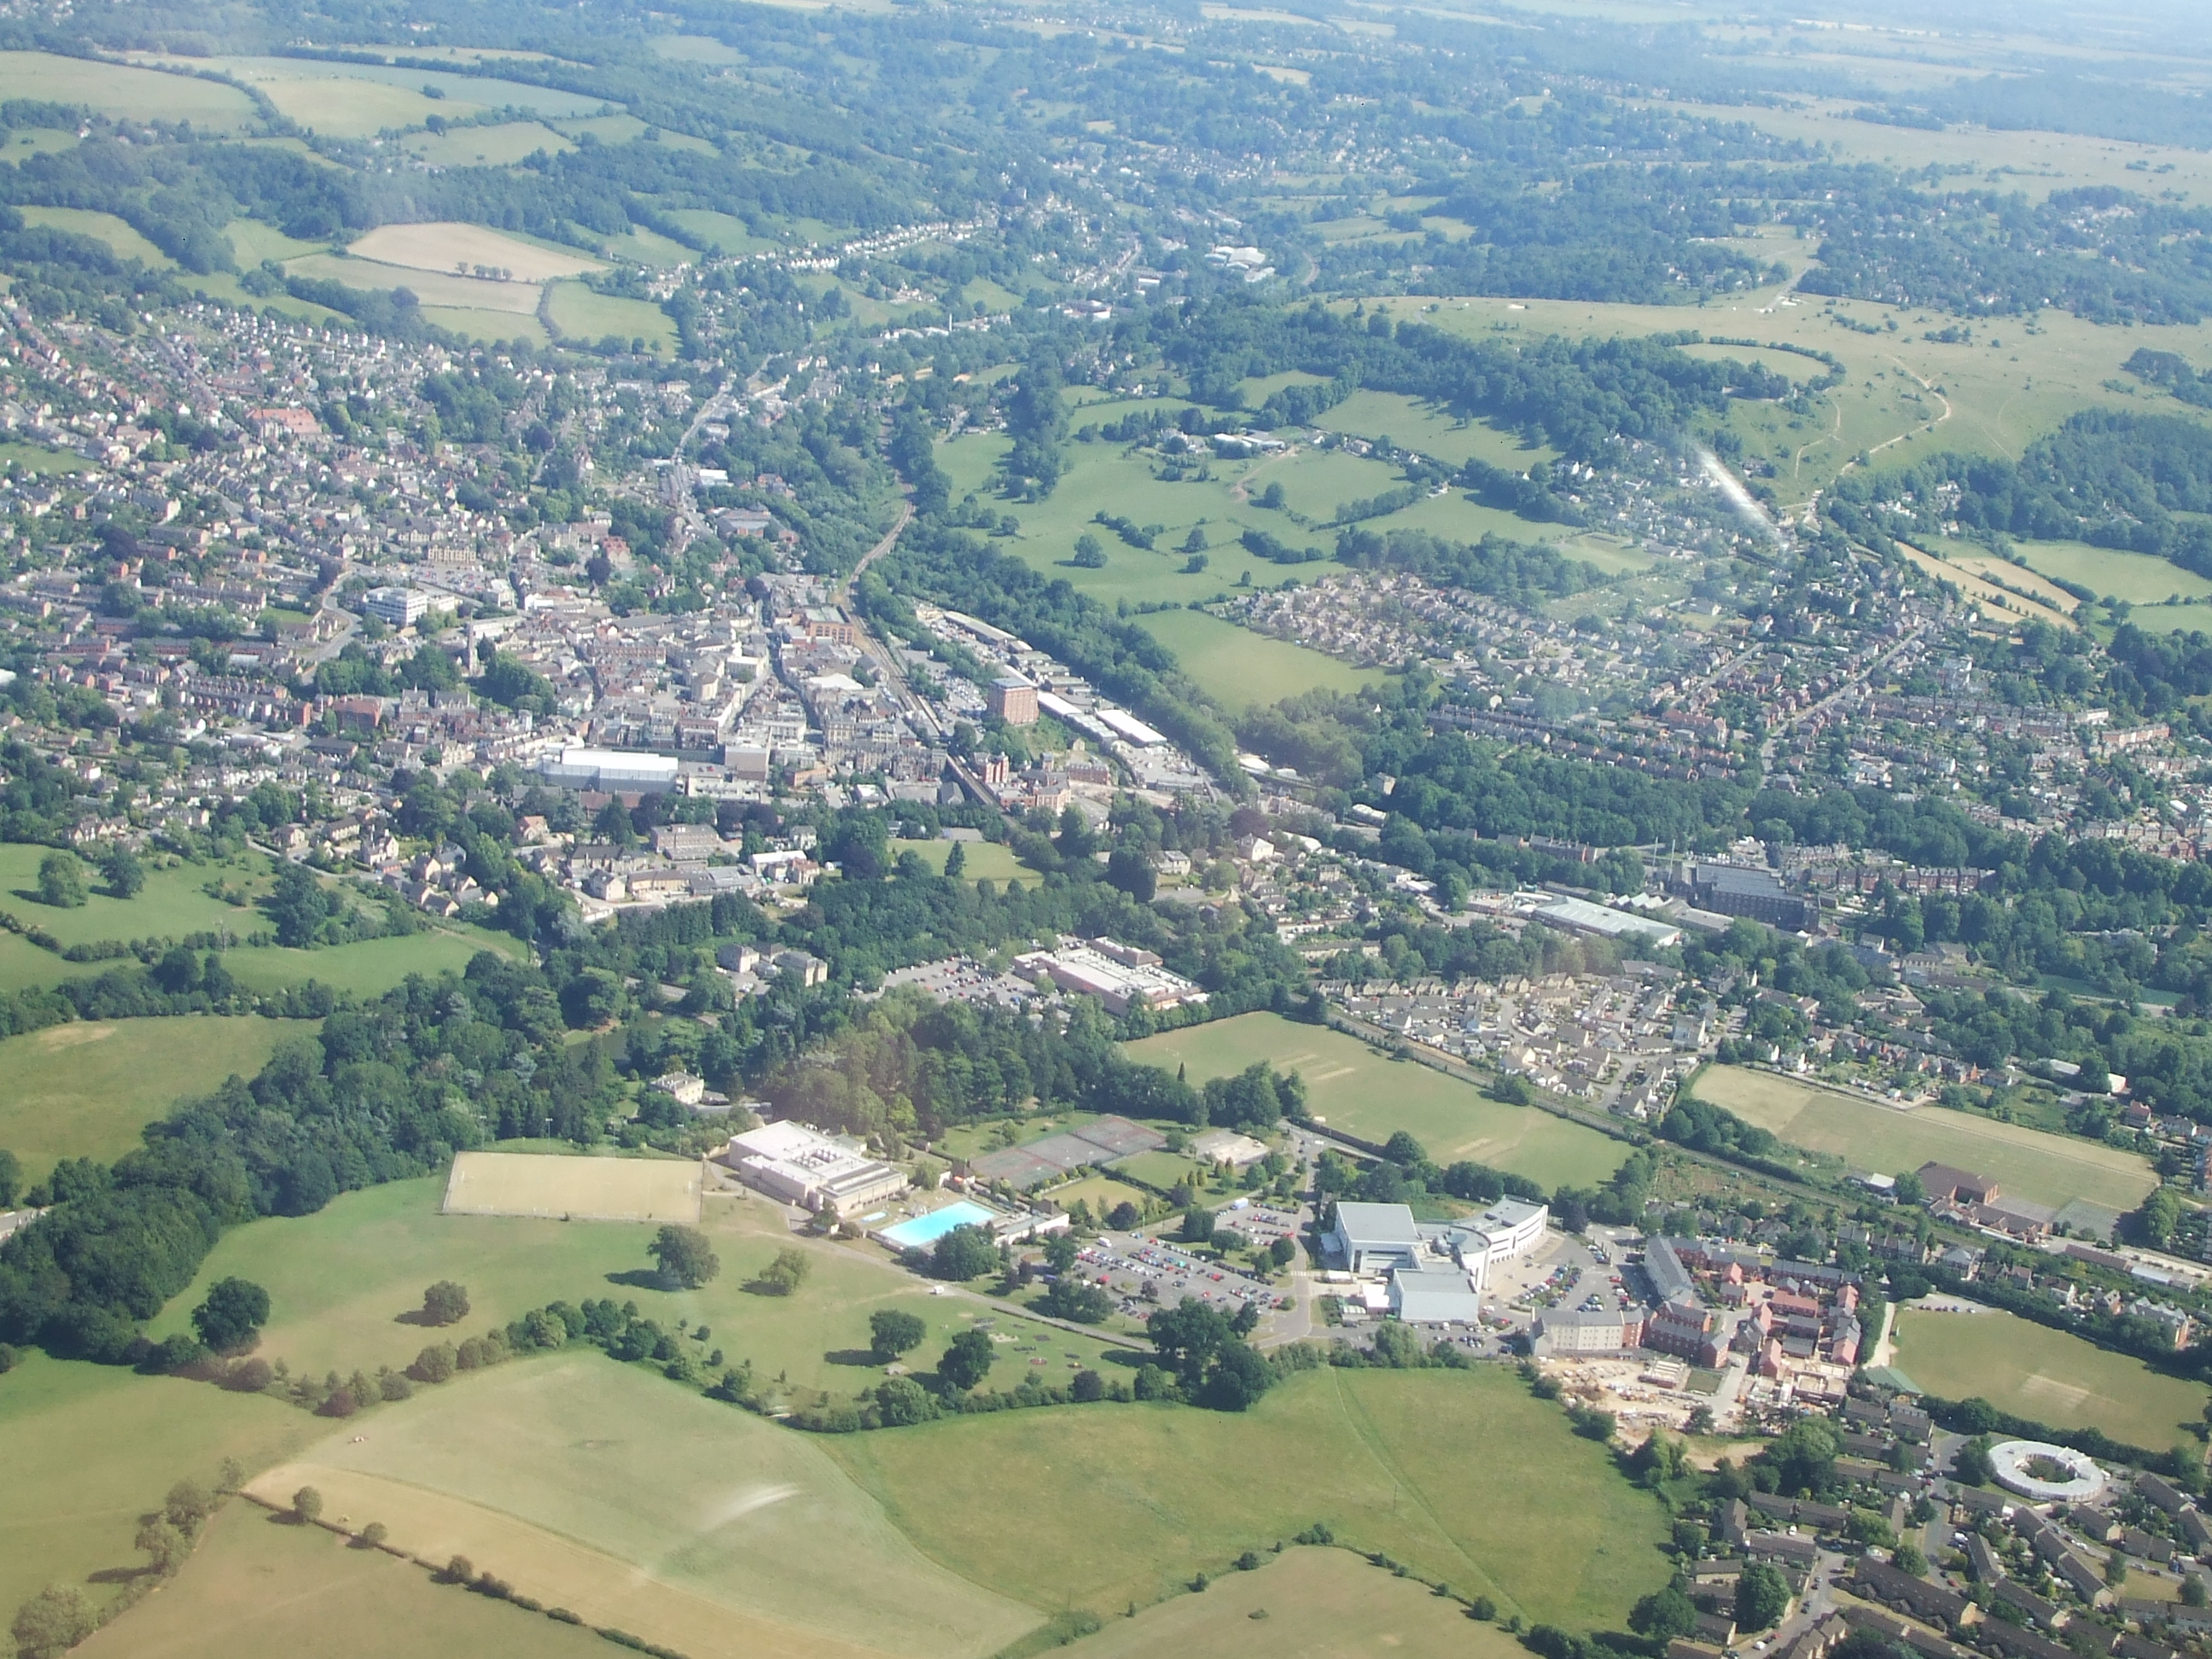 File:Stroud from the air.jpg - Wikimedia Commons